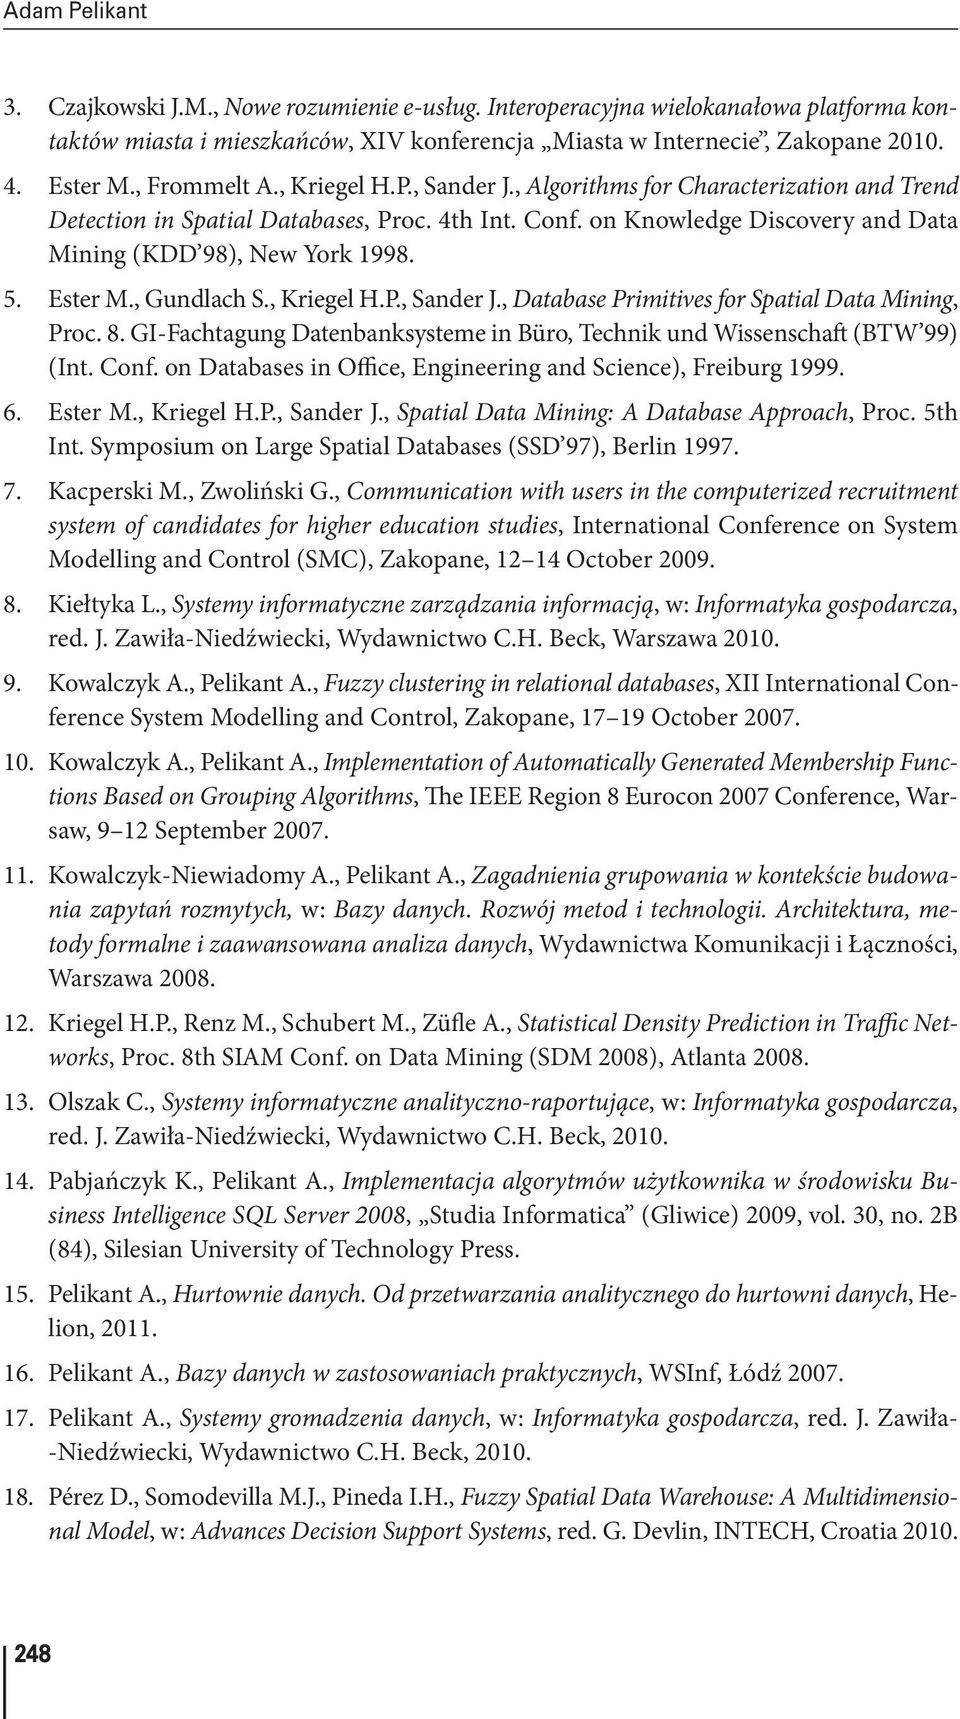 5. Ester M., Gundlach S., Kriegel H.P., Sander J., Database Primitives for Spatial Data Mining, Proc. 8. GI-Fachtagung Datenbanksysteme in Büro, Technik und Wissenschaft (BTW 99) (Int. Conf.